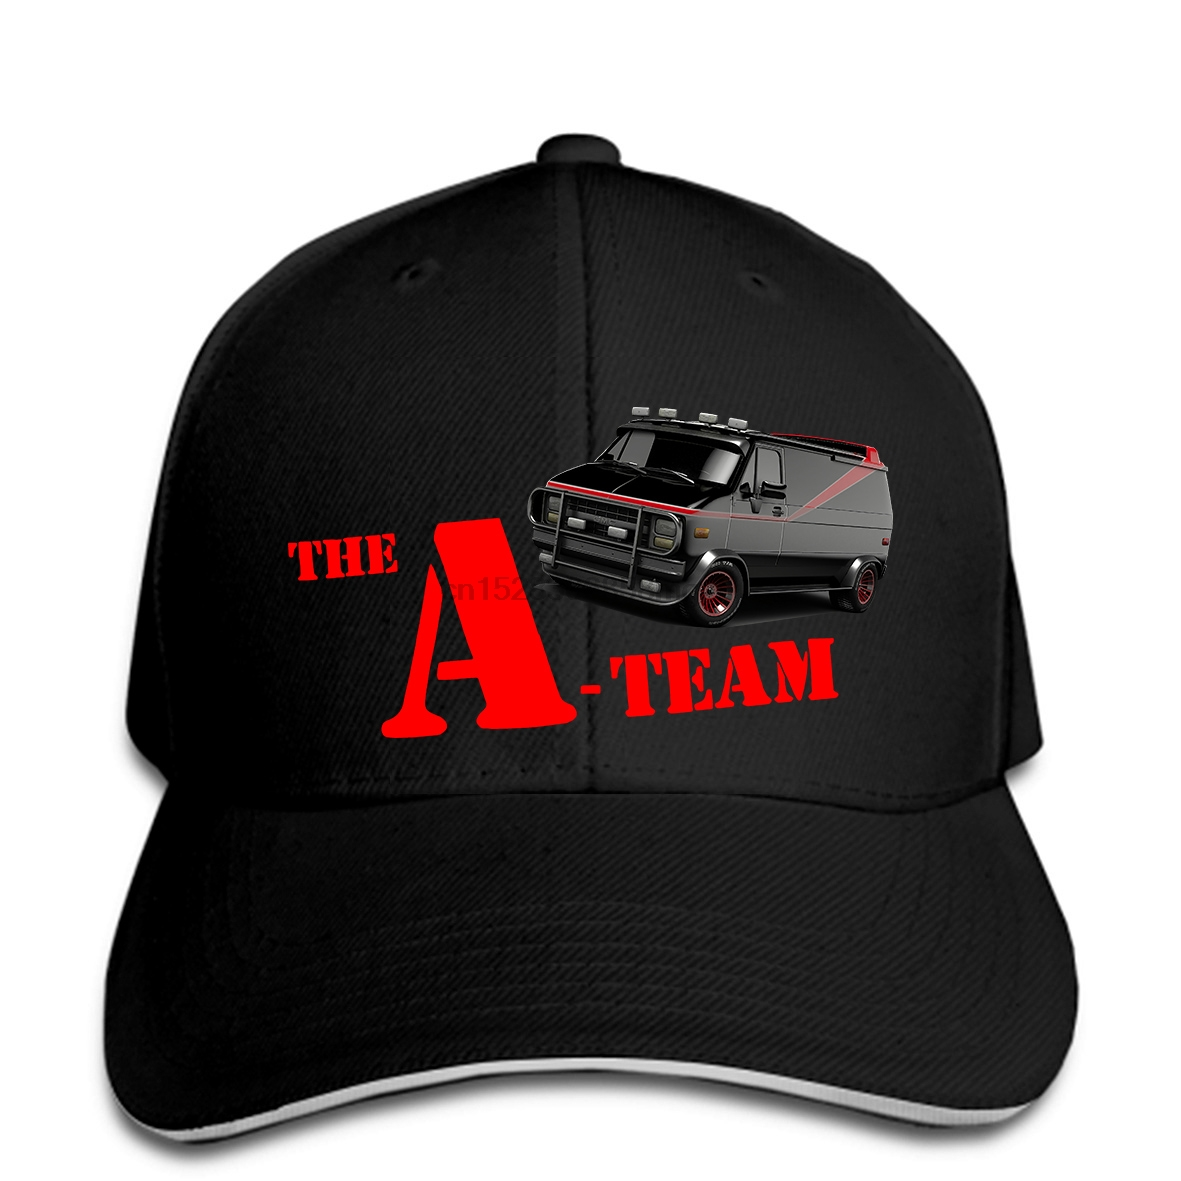 THE A TEAM Men Baseball Cap FATHERS DAY GIFT RETRO 80 TV NEW FAST POST Snapback Cap Women Hat Peaked